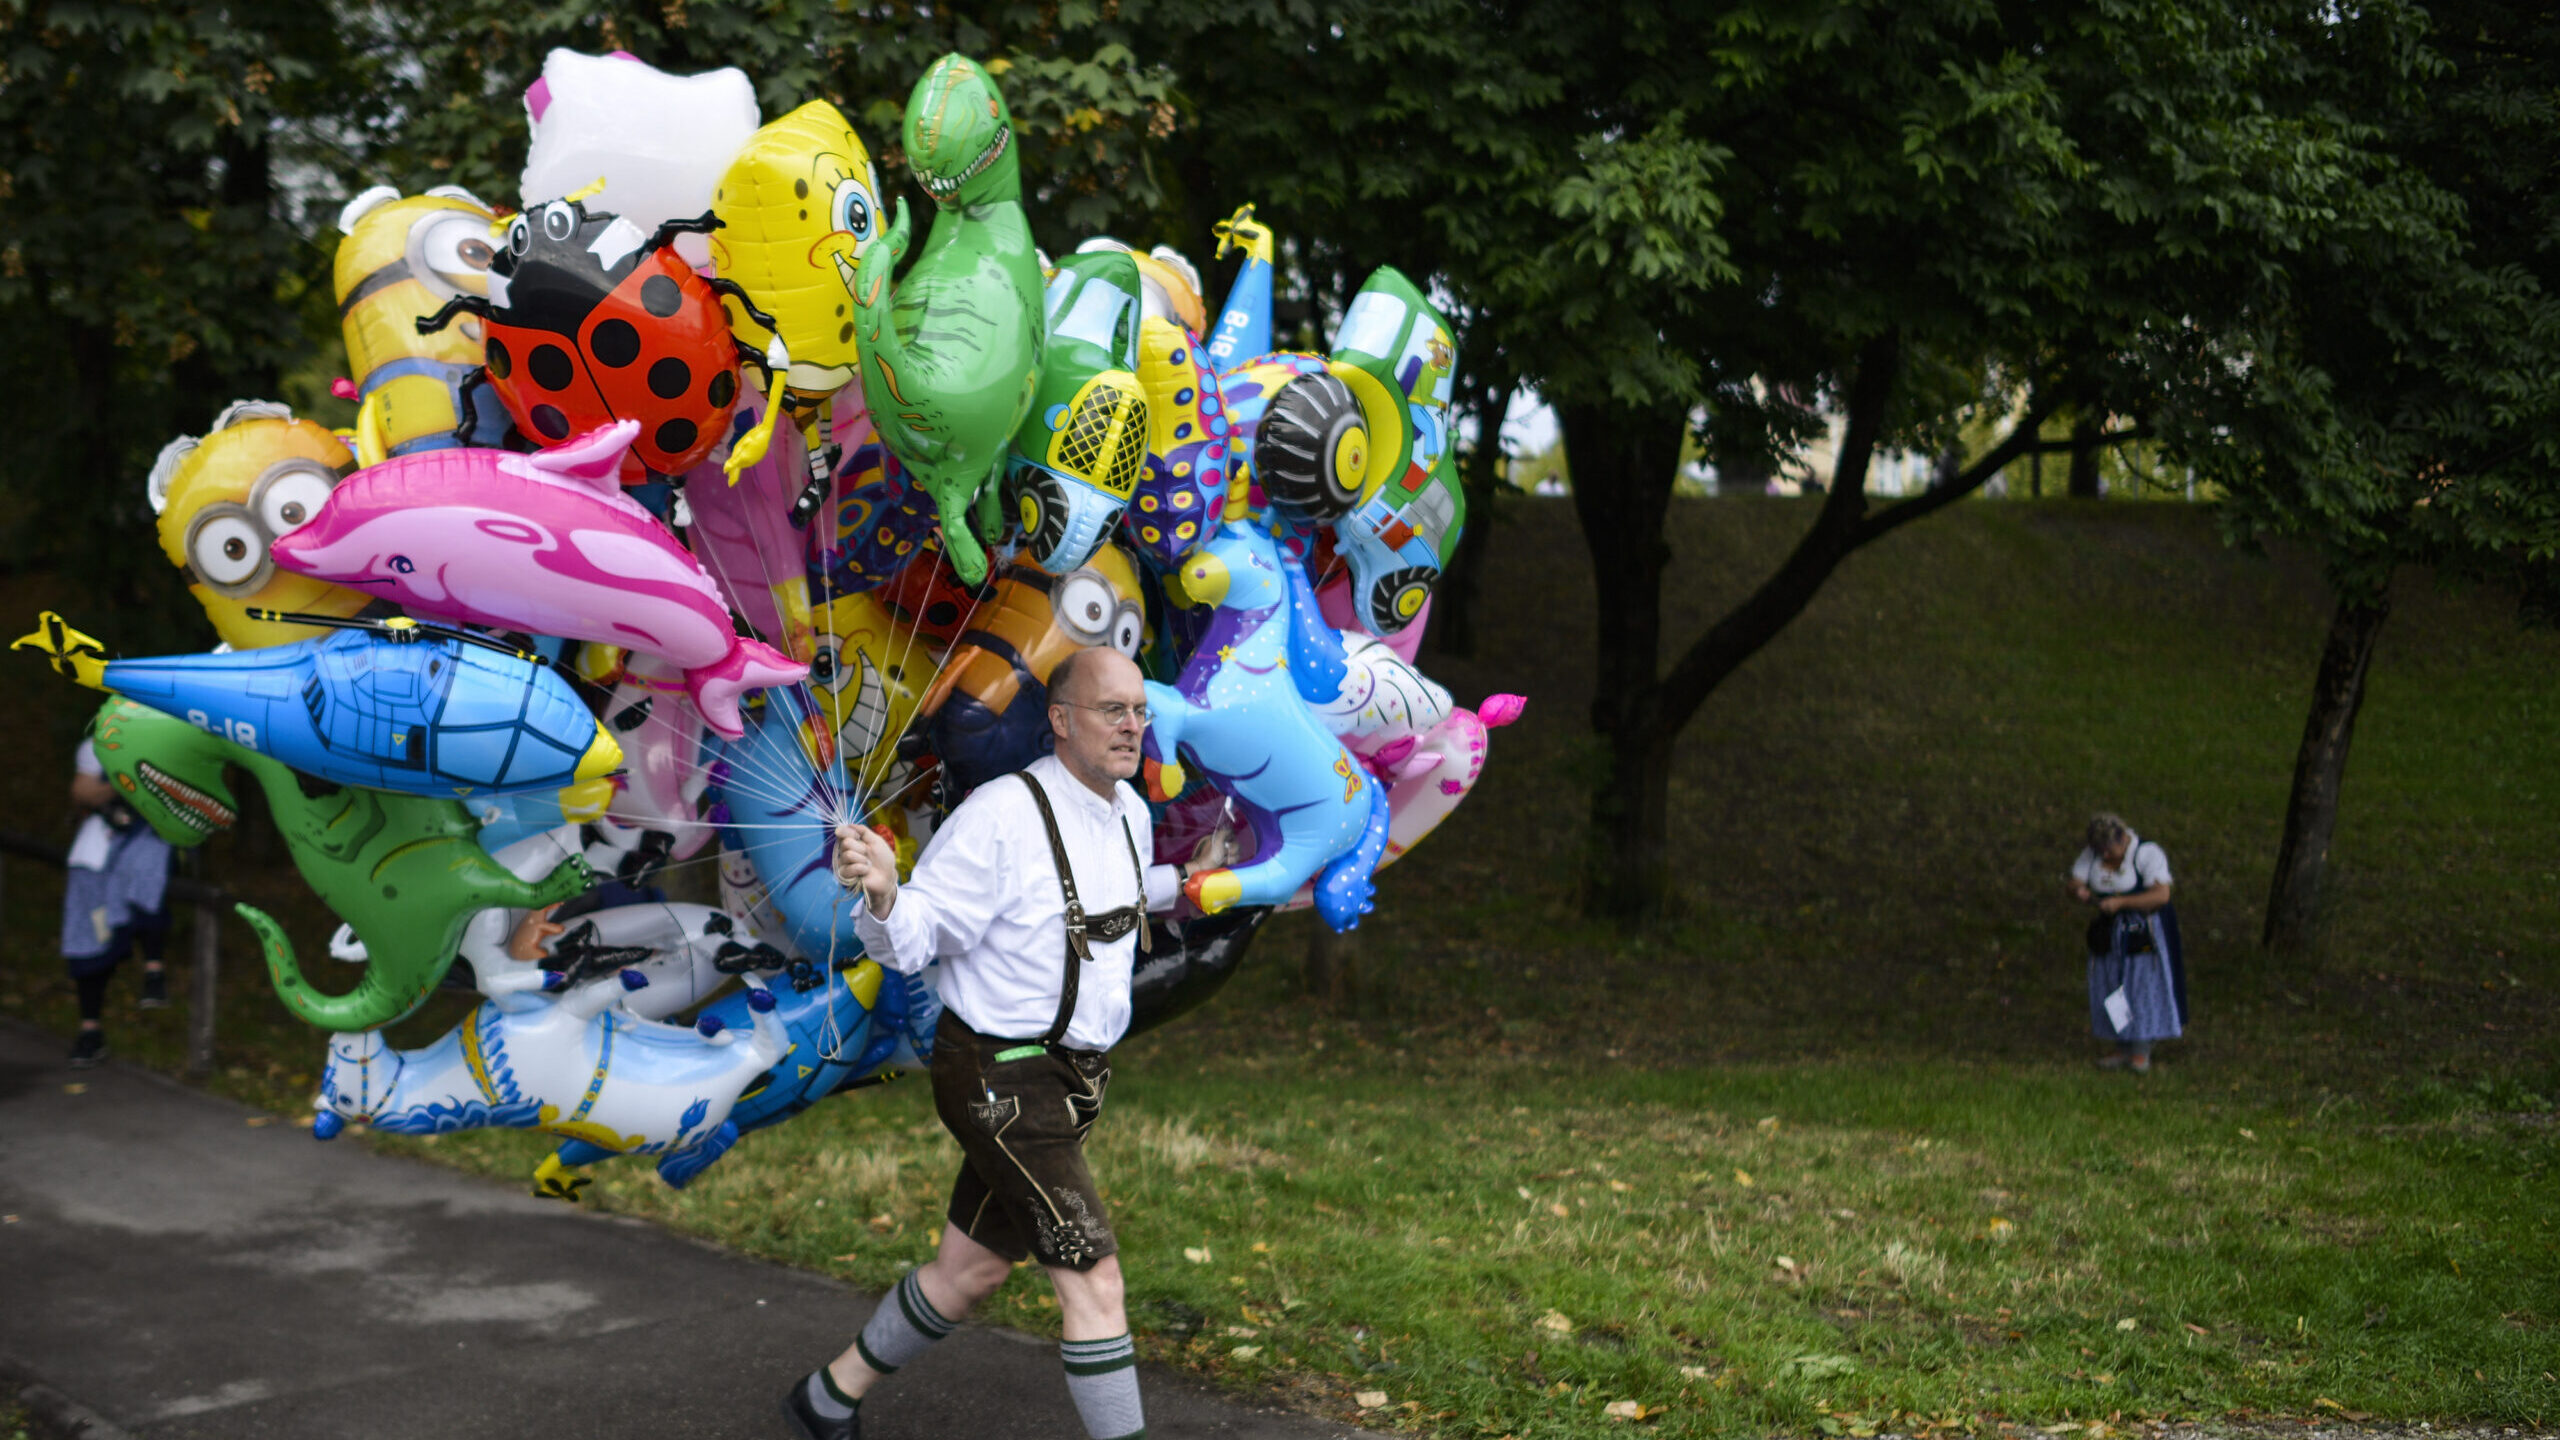 Up, Up and Away: Balloon Vendors Disappearing